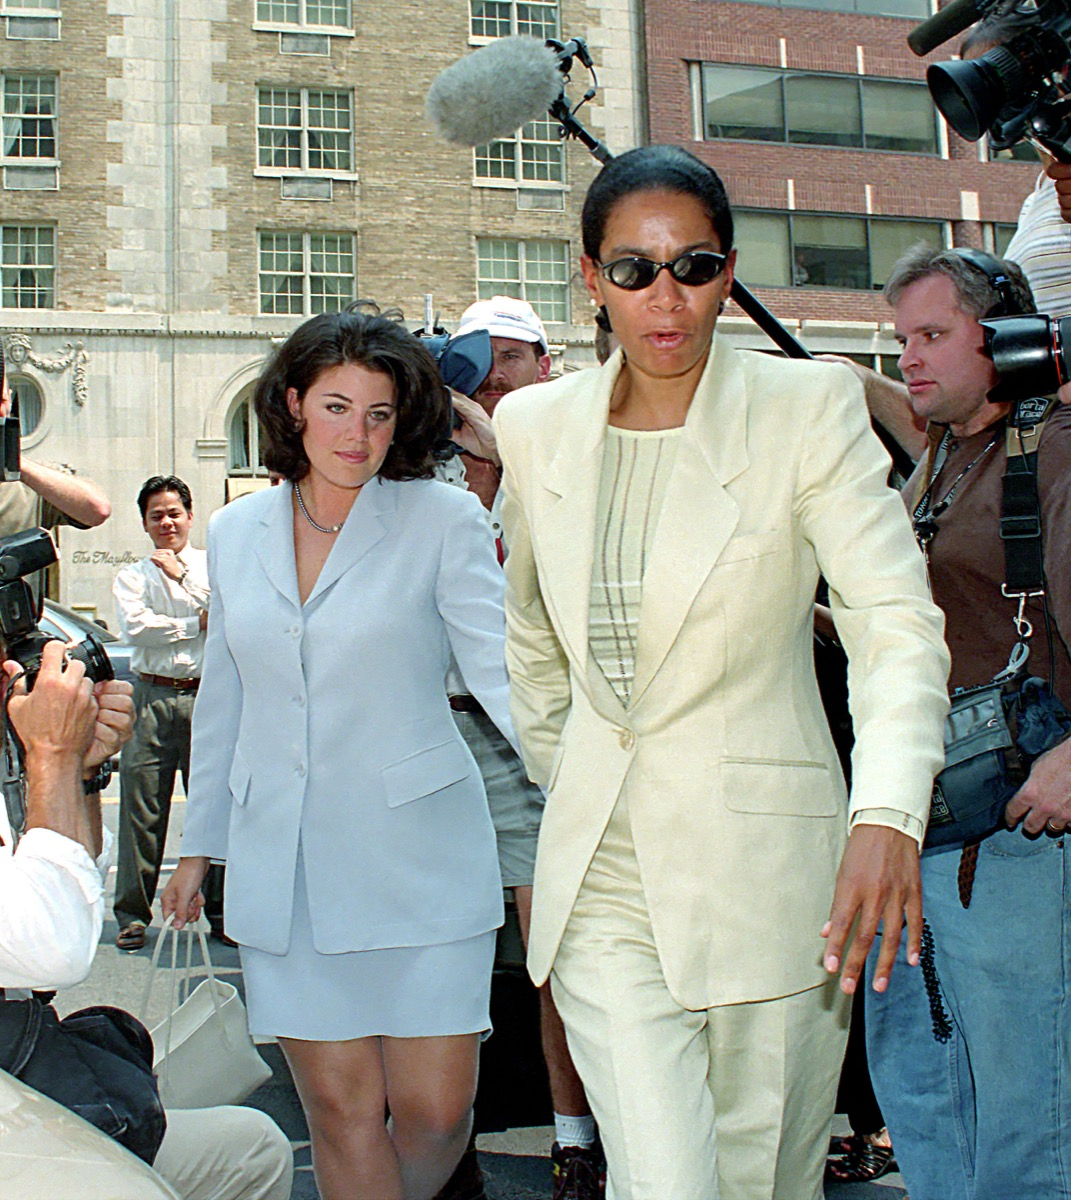 monica lewinsky walking through crowd, things only 90s kids remember